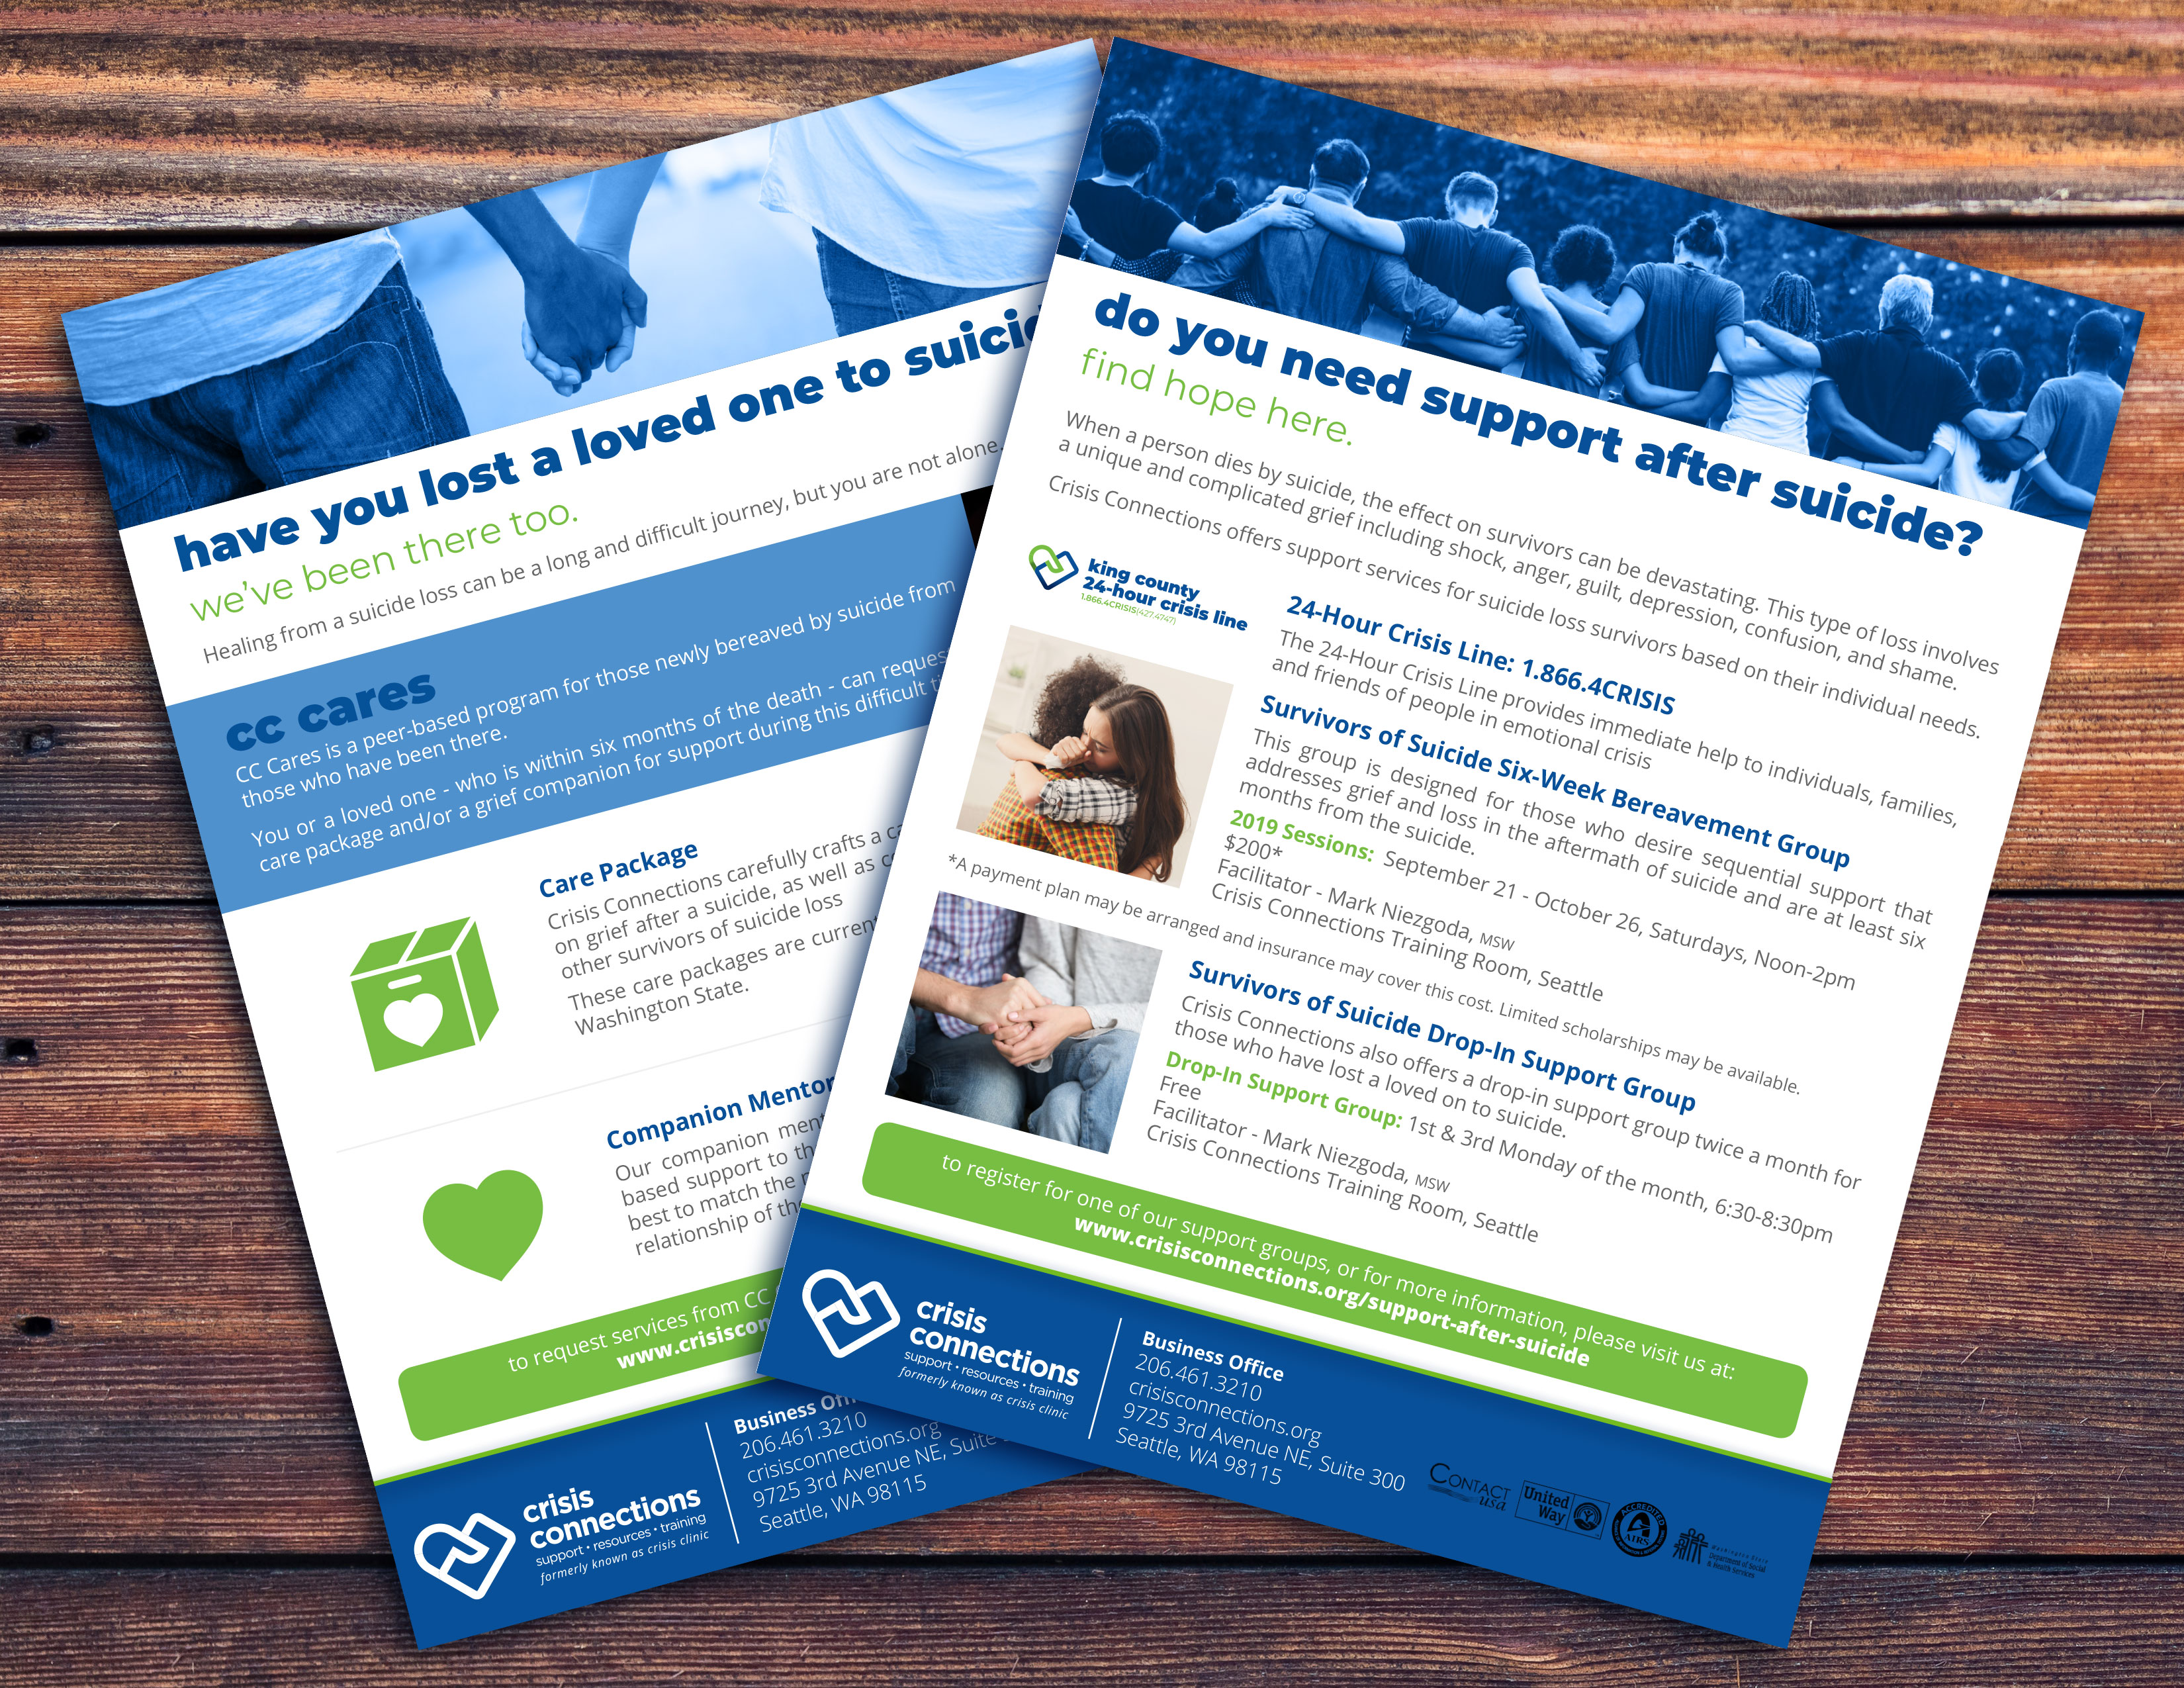 Crisis-Connections-Support-After-Suicide-Flyer